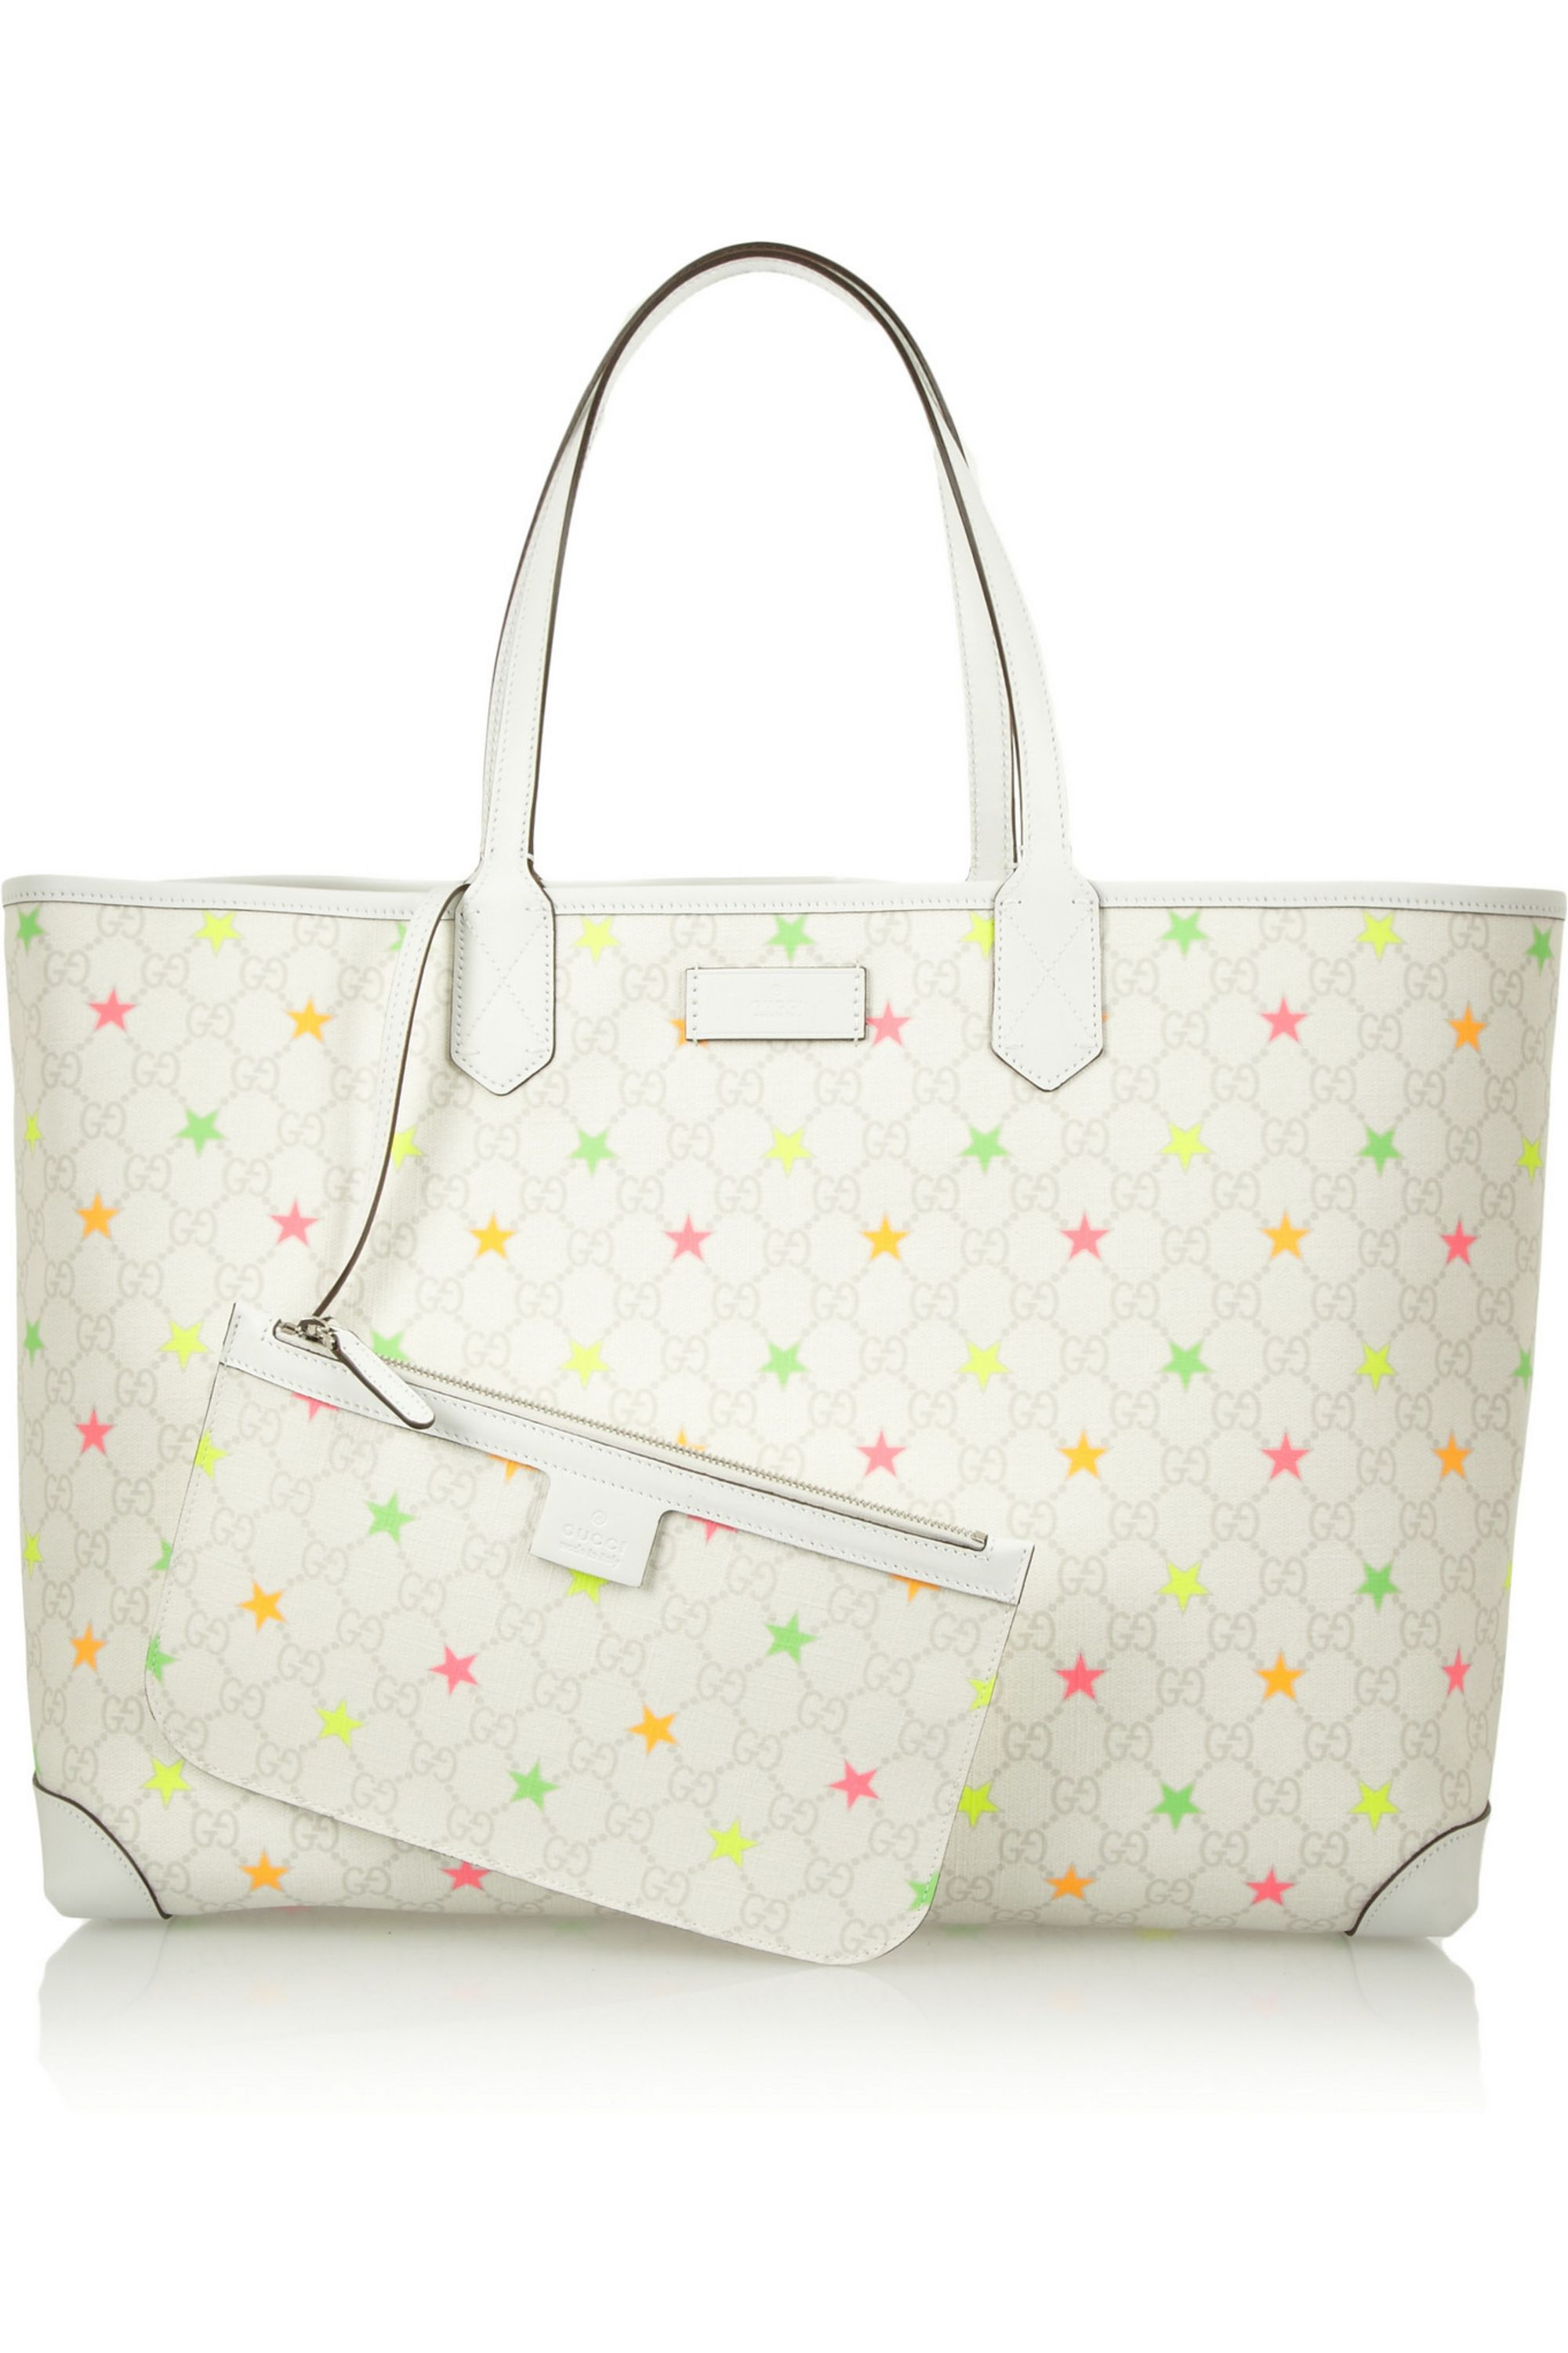 Off White Monogram Star Print Coated Canvas Tote Gucci Net A Porter